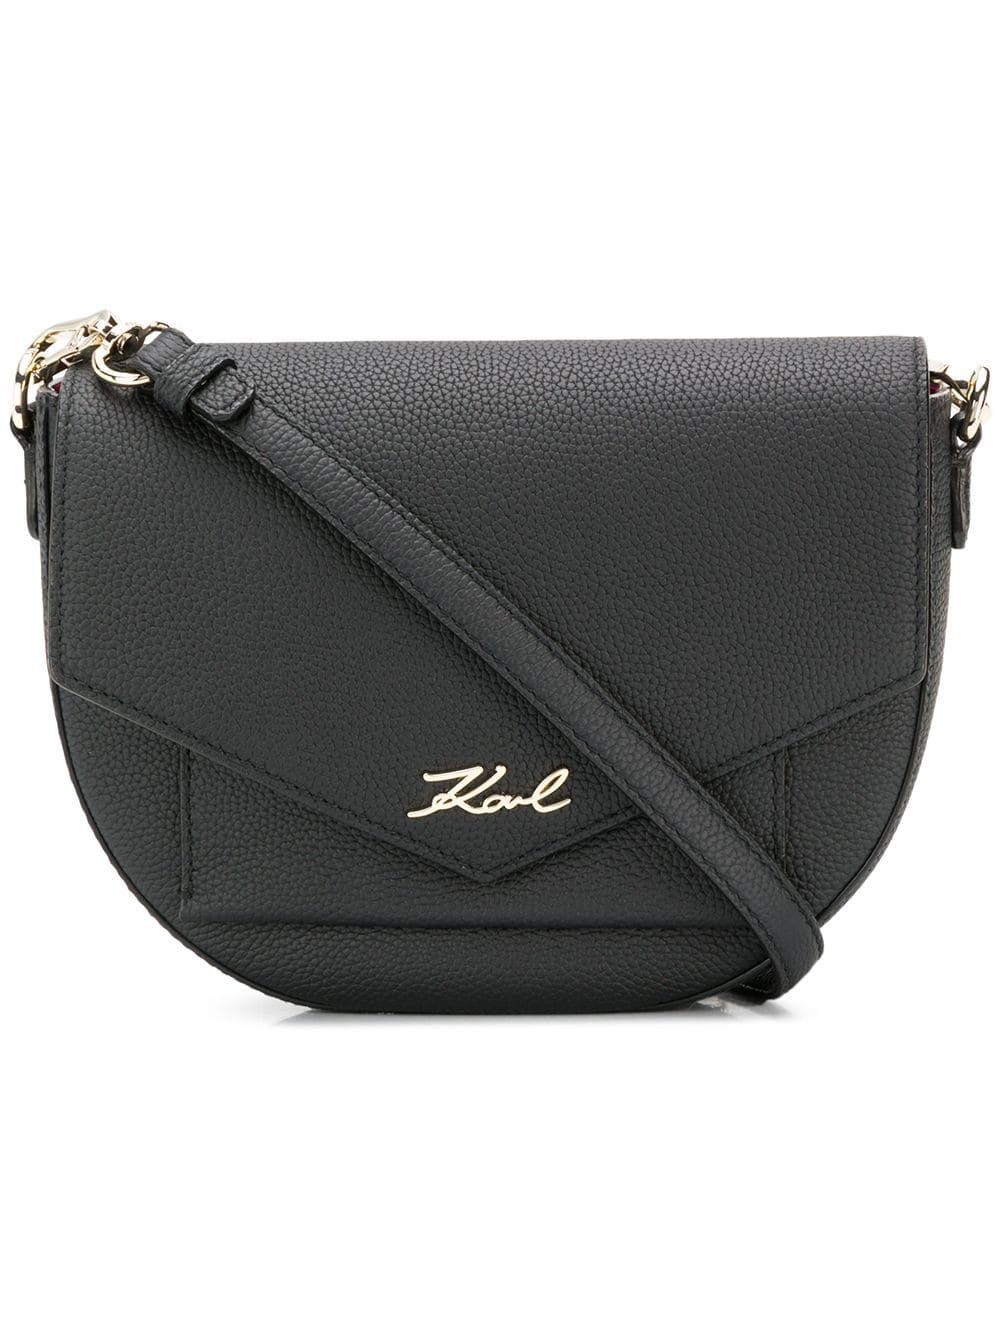 65d656904f9e Karl Lagerfeld K Karry All Crossbody Bag - Black